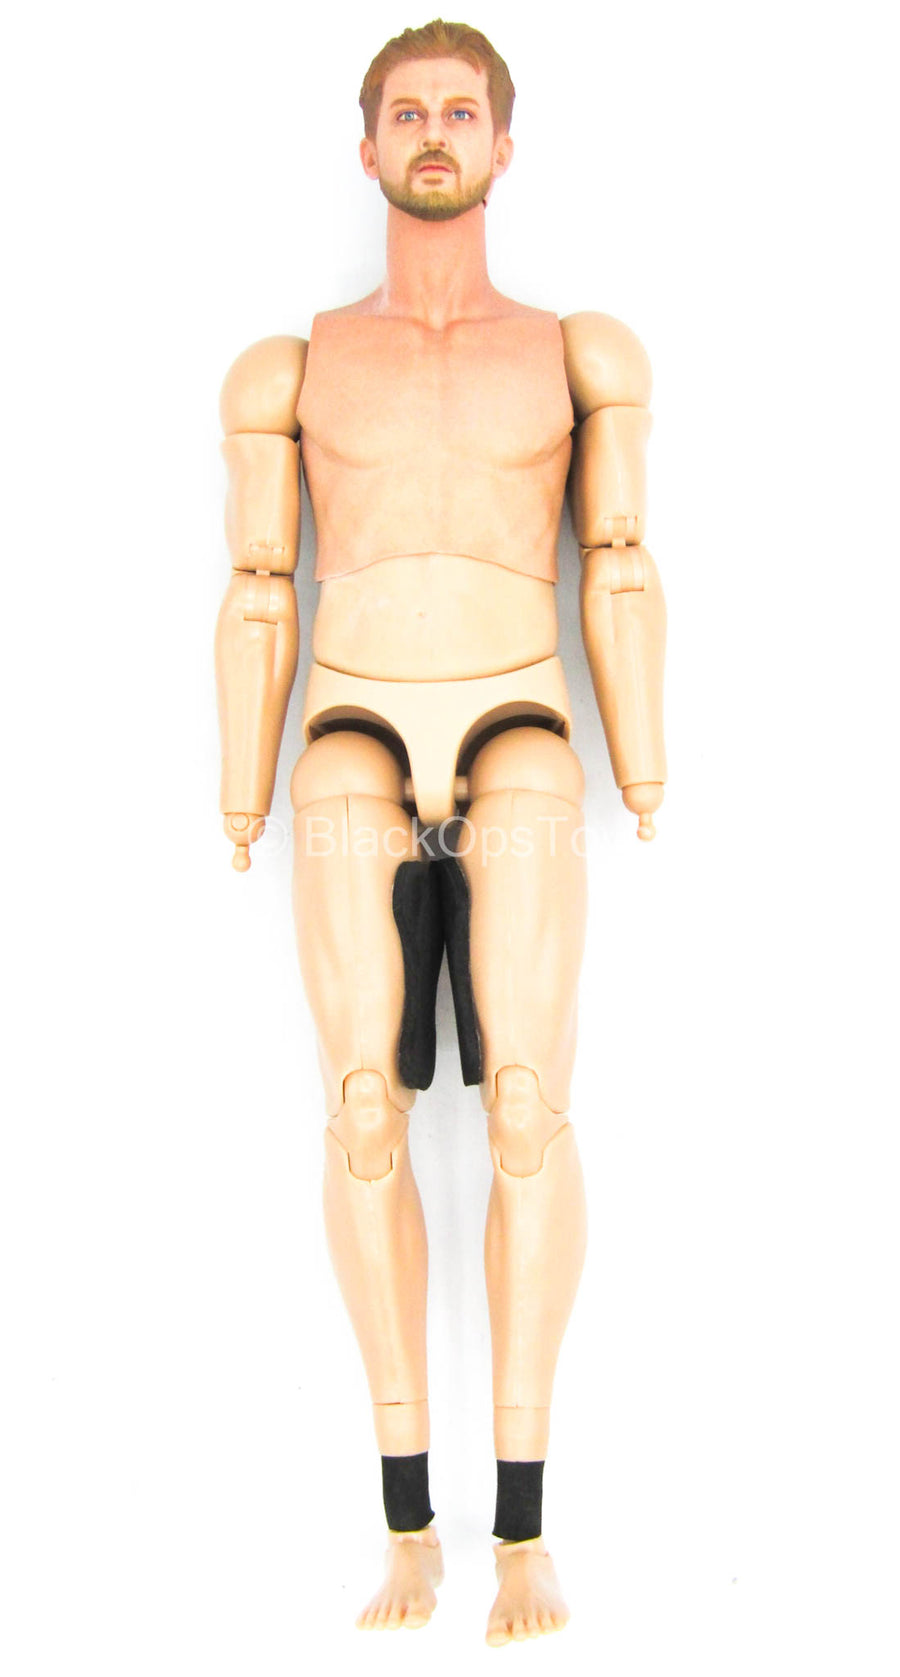 NSWDG AOR1 Ver. - Male Base Body w/Head Sculpt